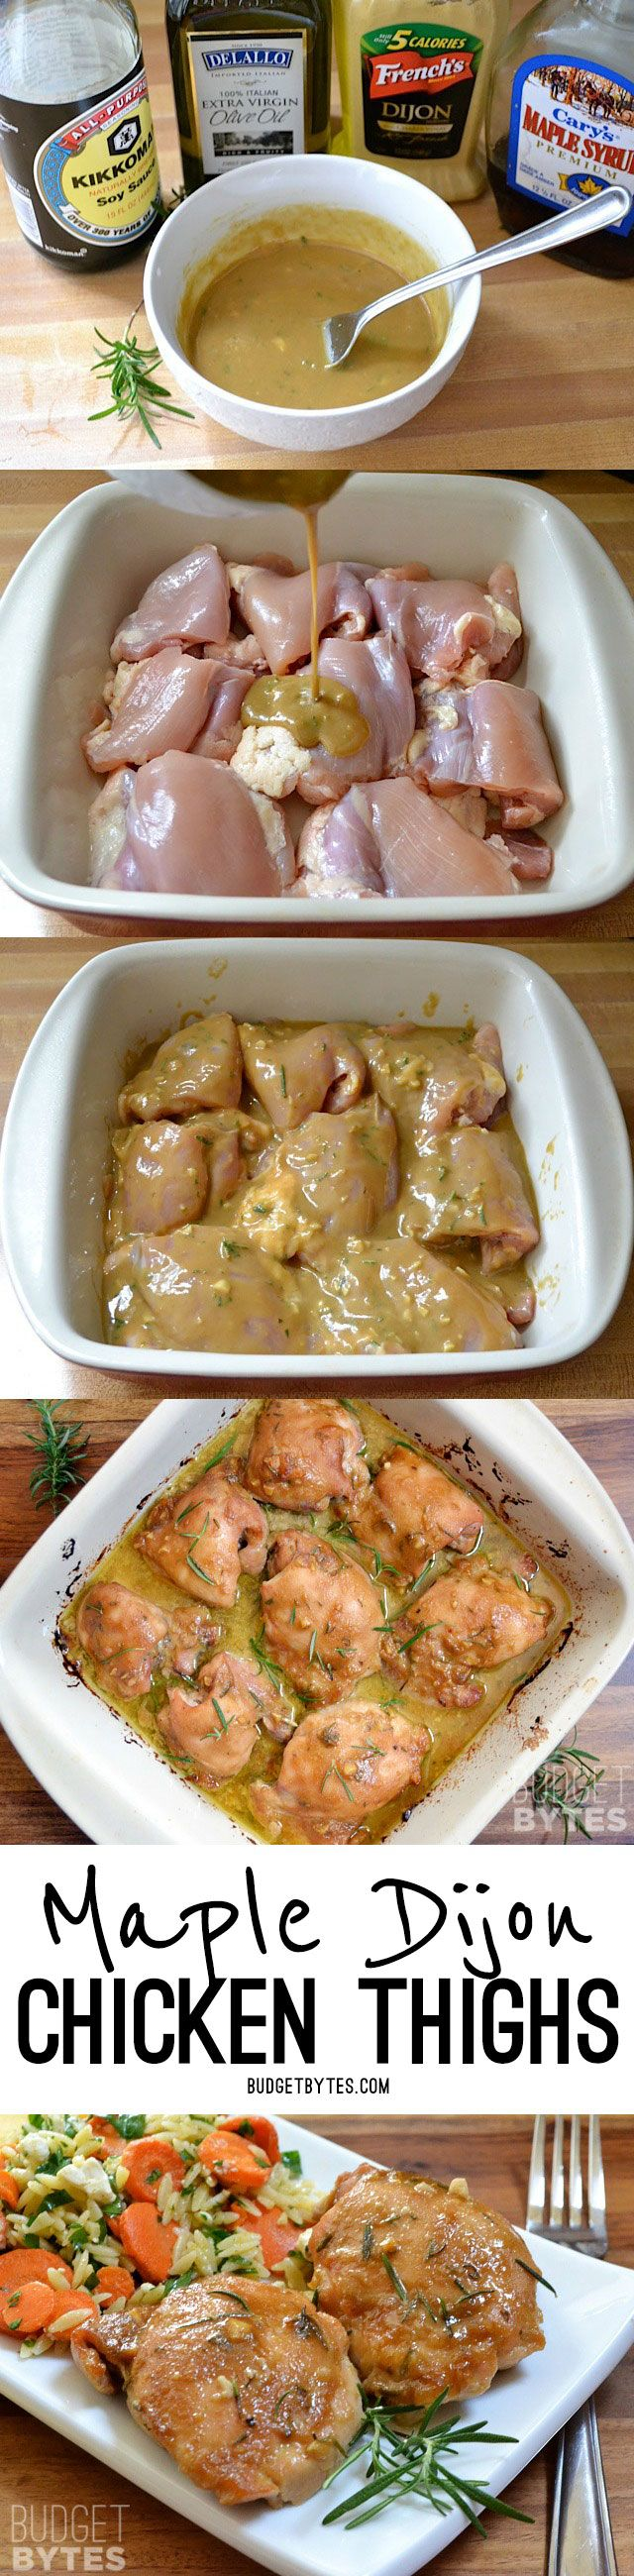 Maple Dijon Chicken Thighs Healthy Chicken Thigh Recipesslow Cooker